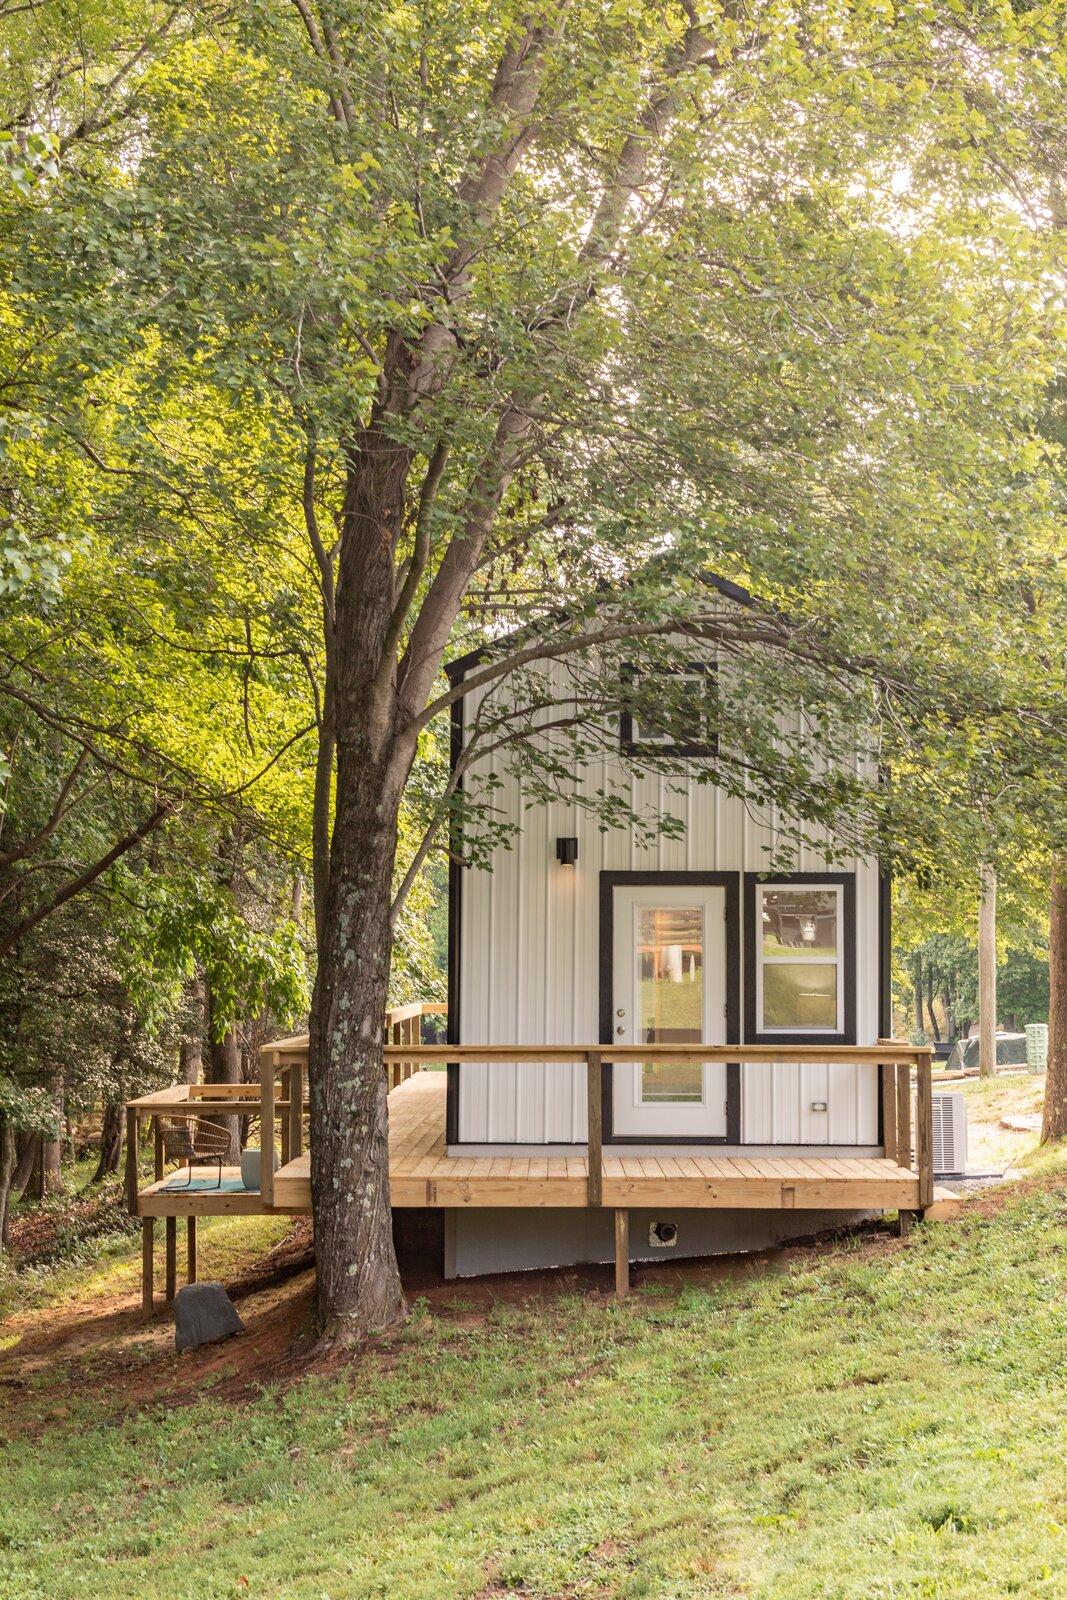 Exterior, Tiny Home Building Type, Metal Siding Material, Metal Roof Material, and Gable RoofLine Eclipse founder Justin Draplin explains his scheme for the 399-square-foot dwellings that include sustainable features such as solar power, in addition to spacious and flexible interiors.  Photo 1 of 13 in This South Carolina Company Offers Tiny Cottages With Off-Grid Capabilities